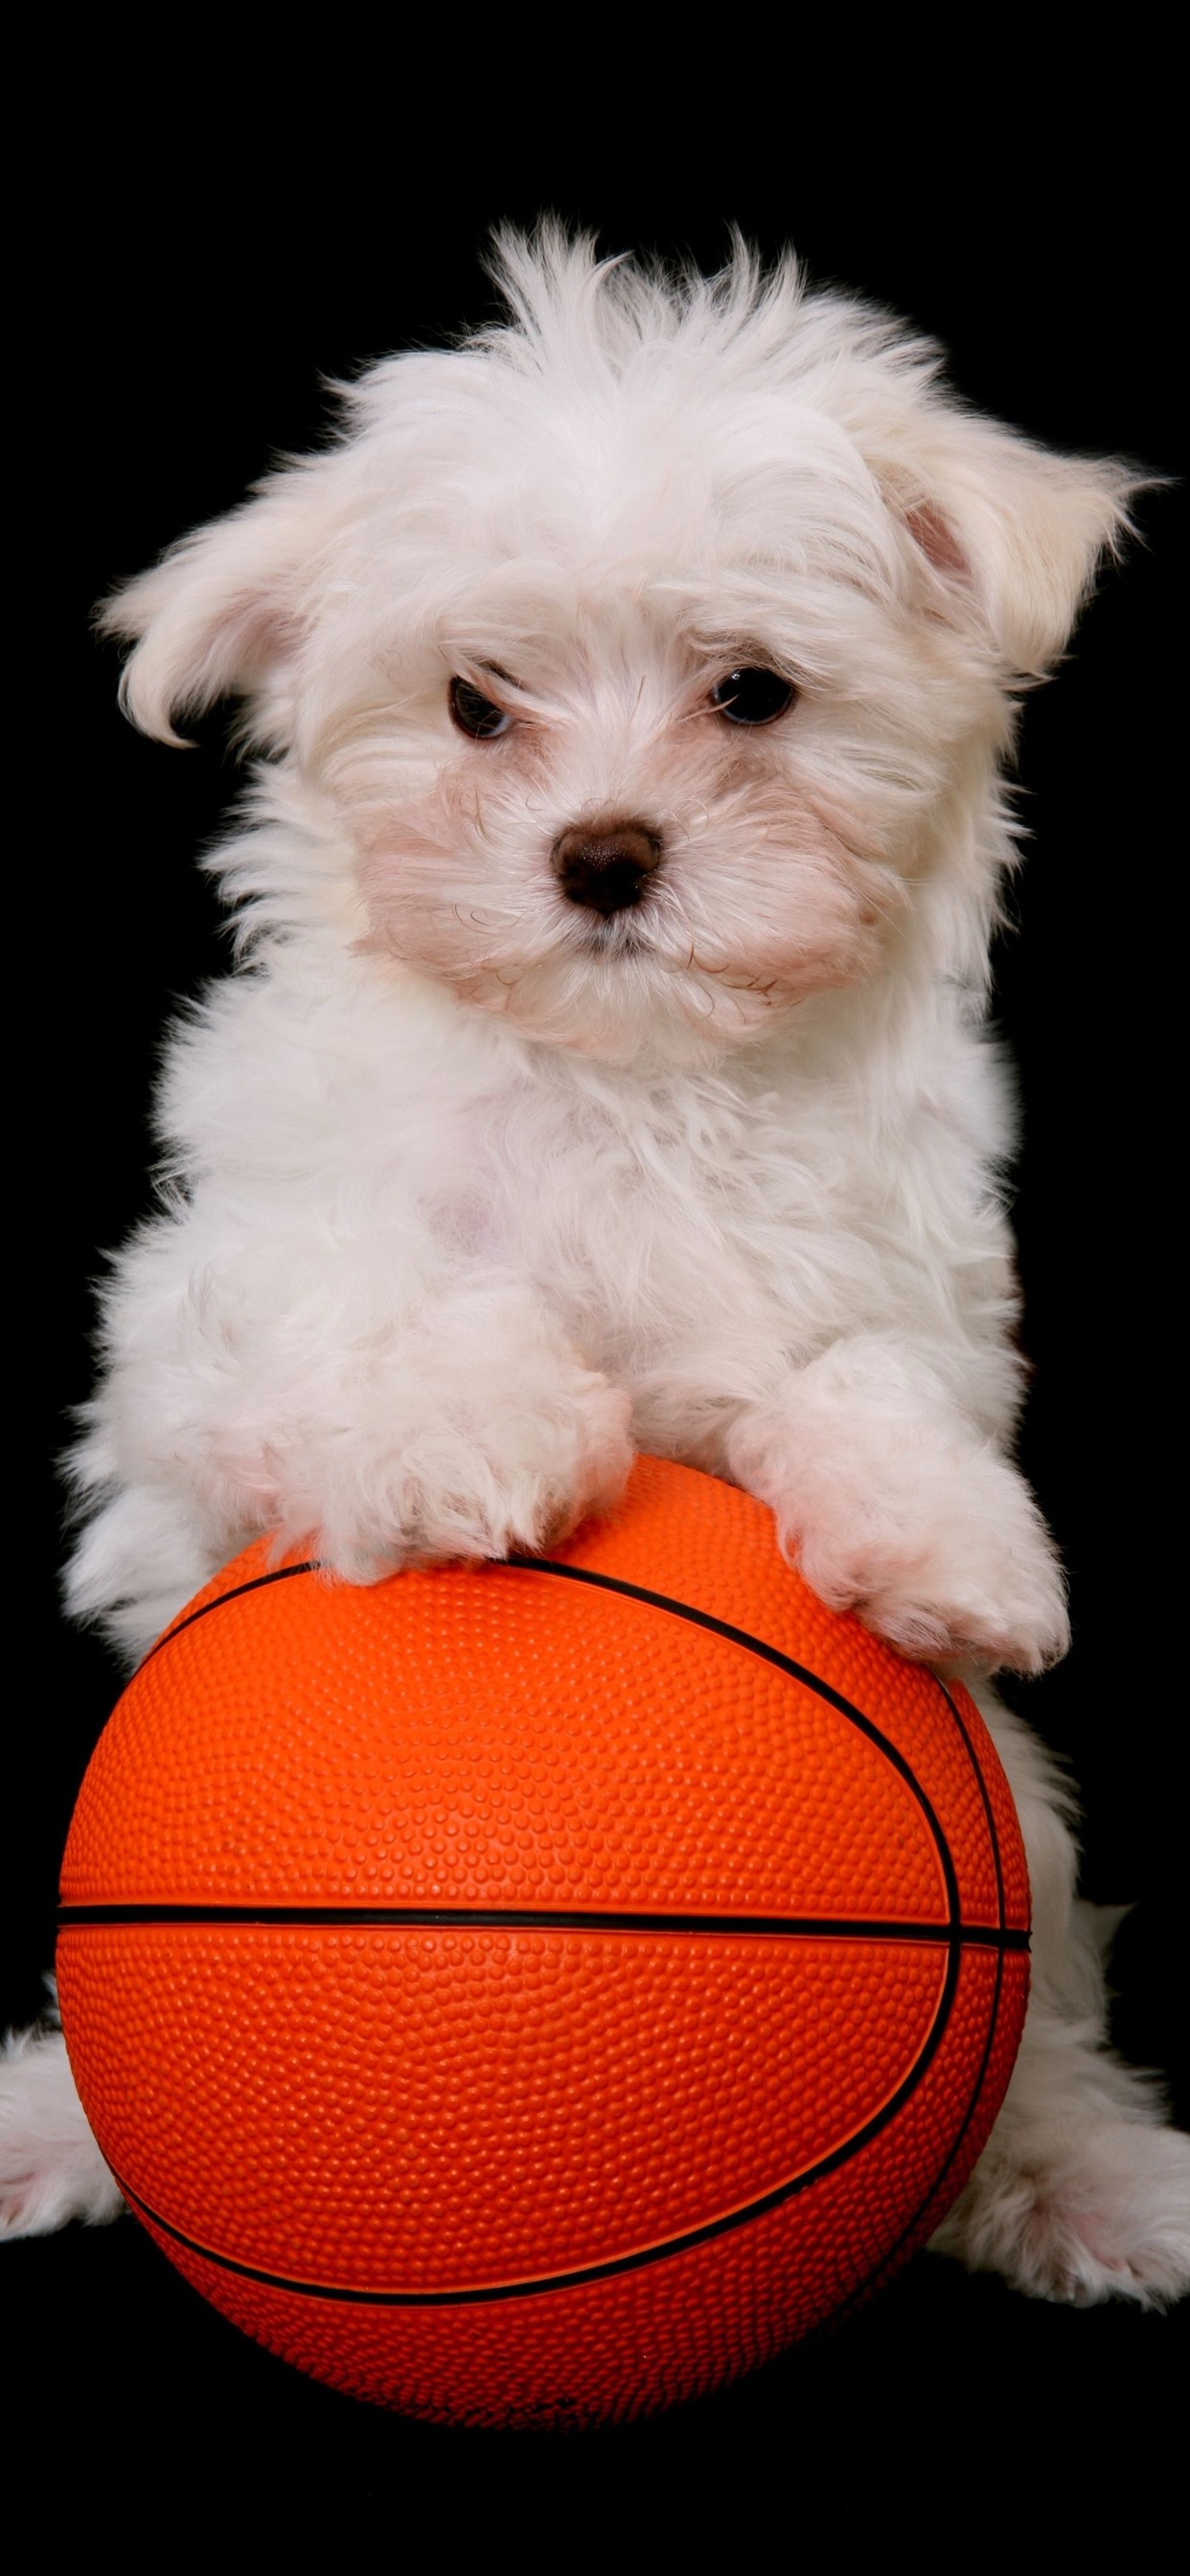 White Puppy And Basketball Black Background 1242x2688 Iphone 11